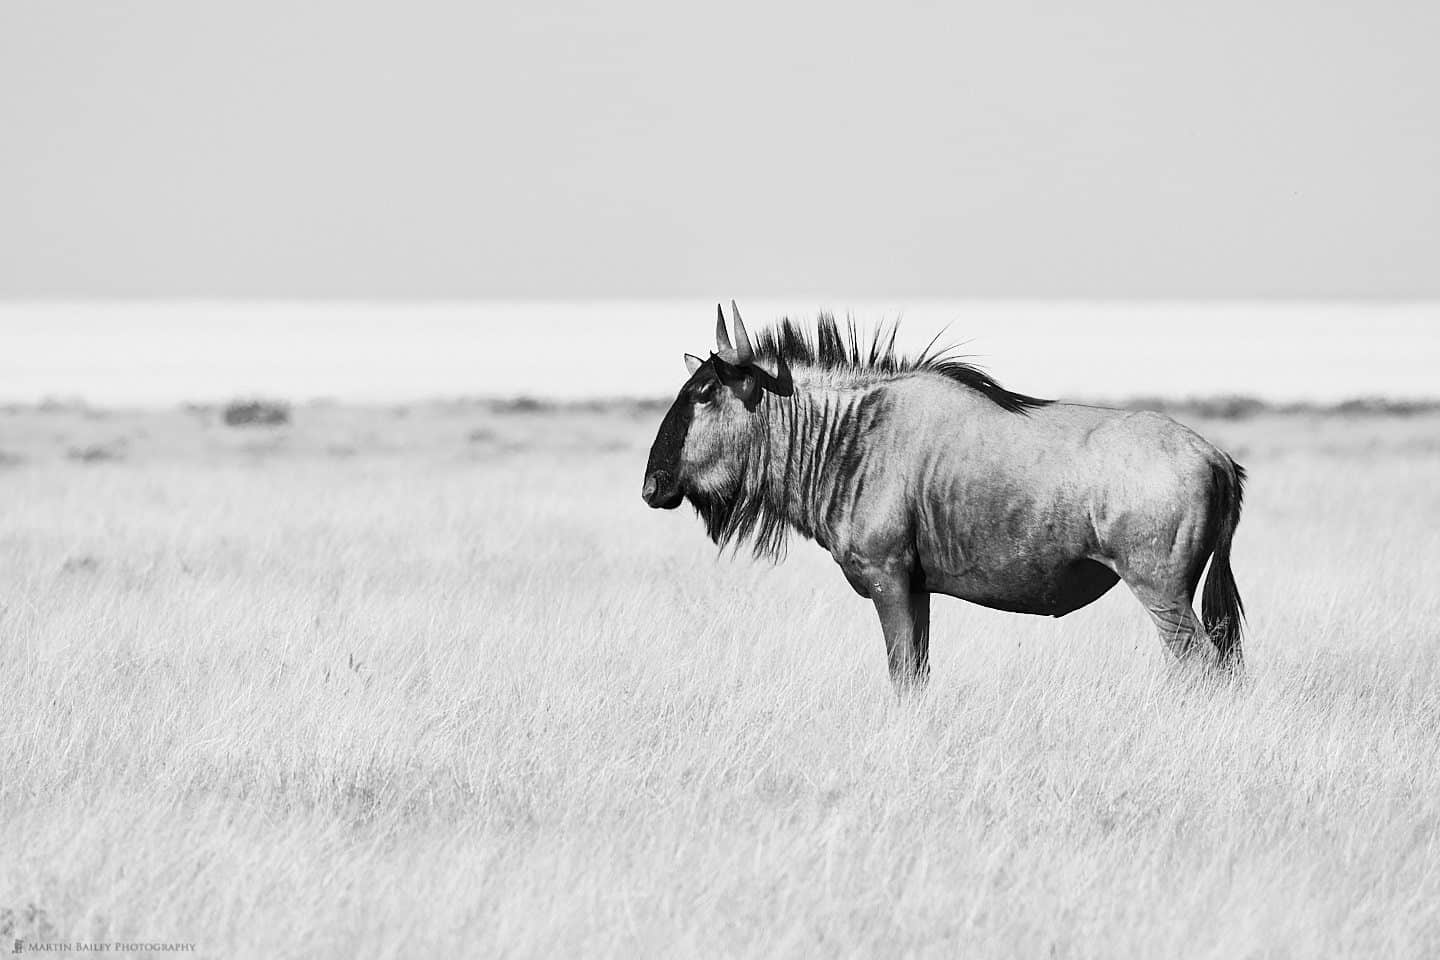 Lone Wildebeest on Plain